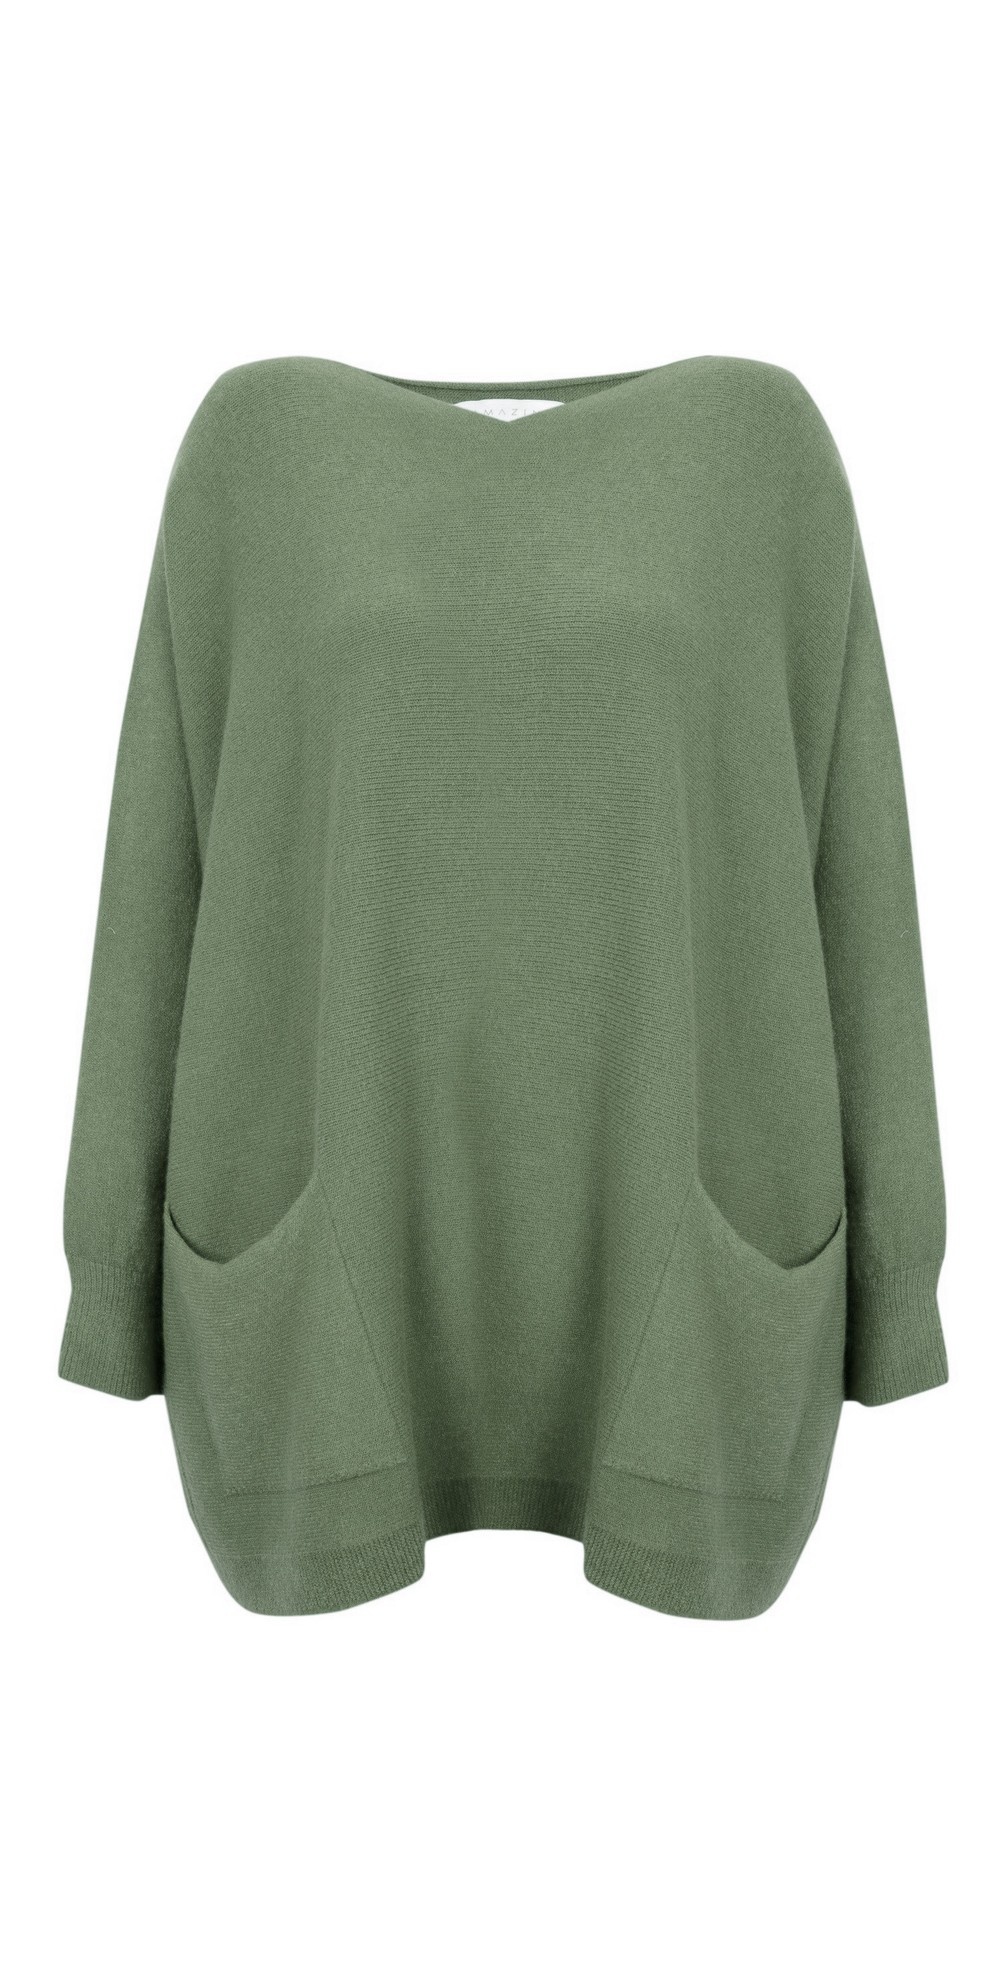 Carys Sweater Olive Green - Amazing Woman